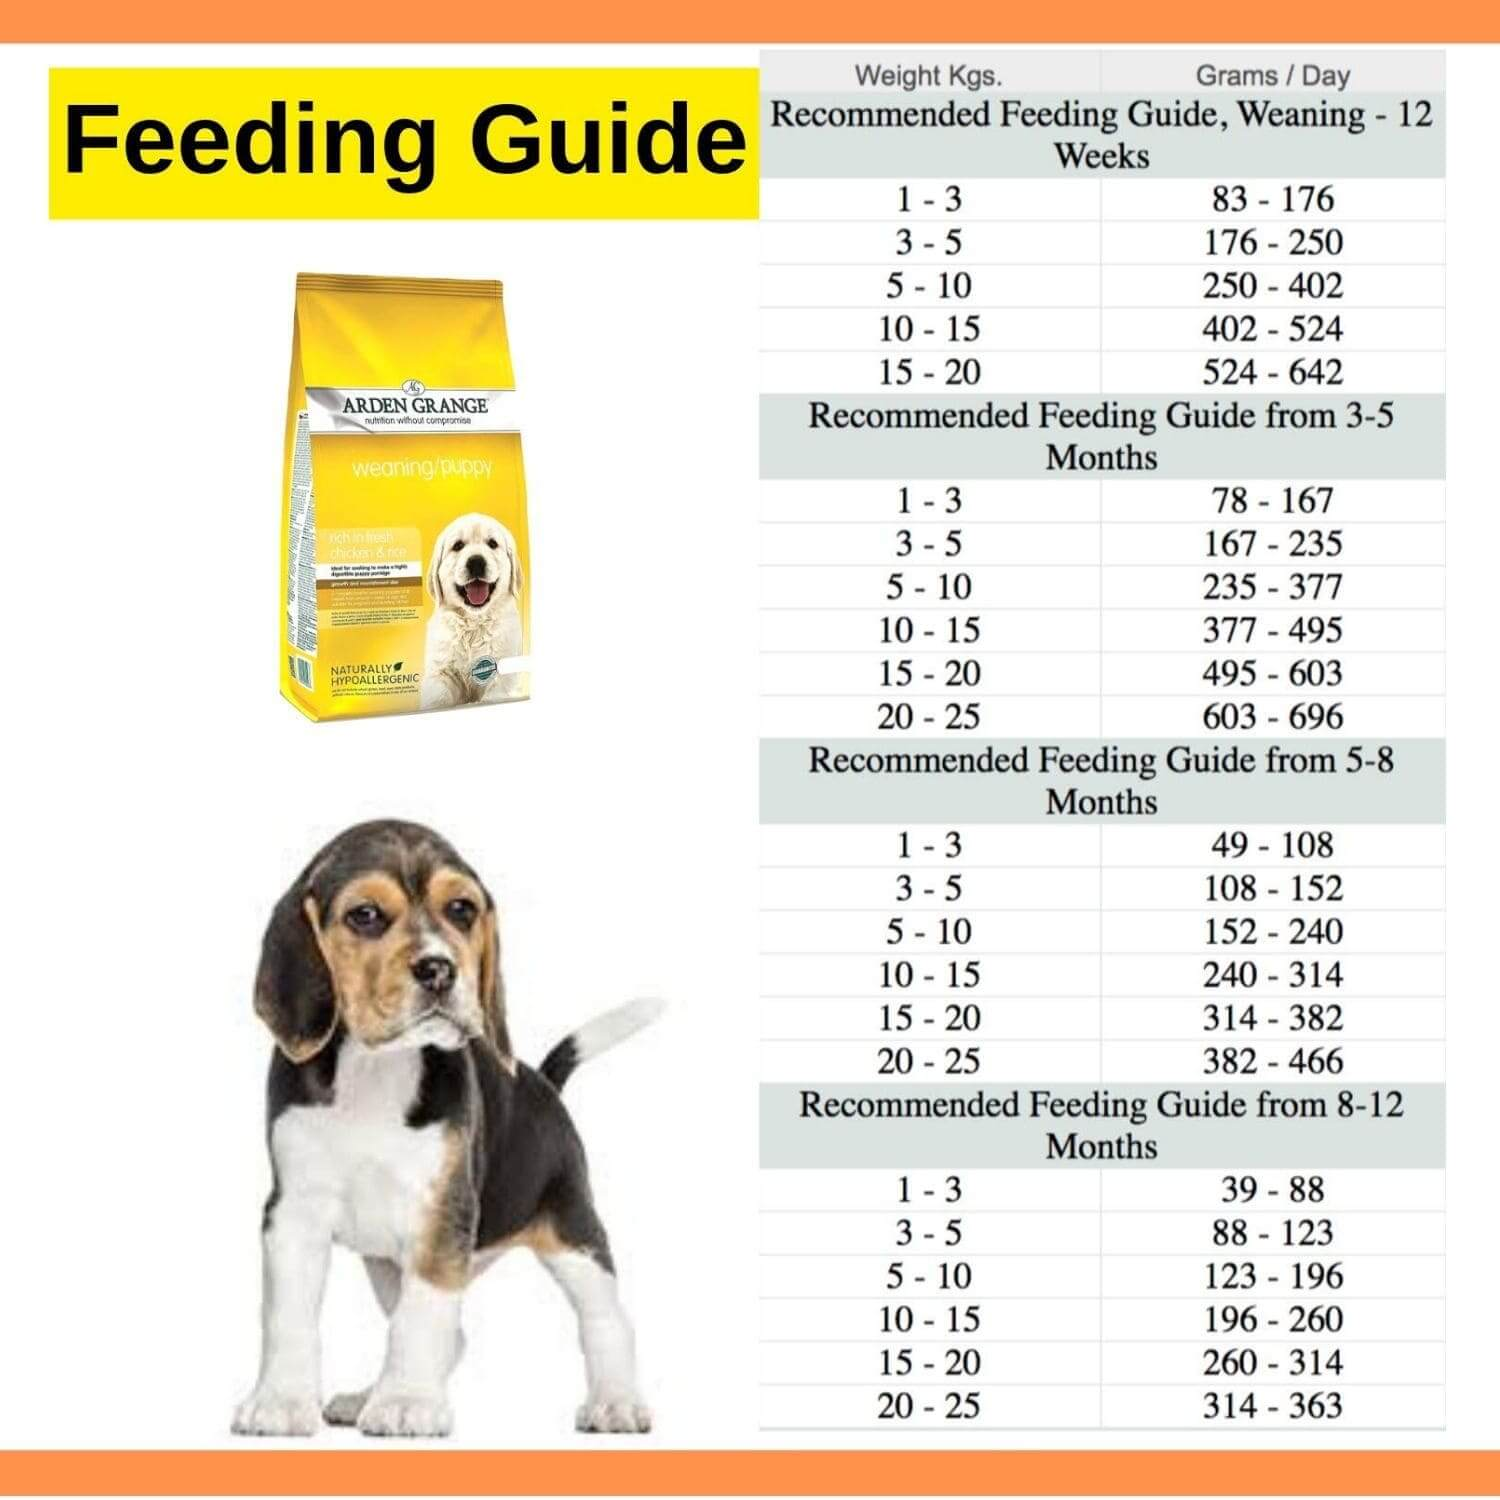 Arden Grange Weaning Puppy Food Feeding Guide